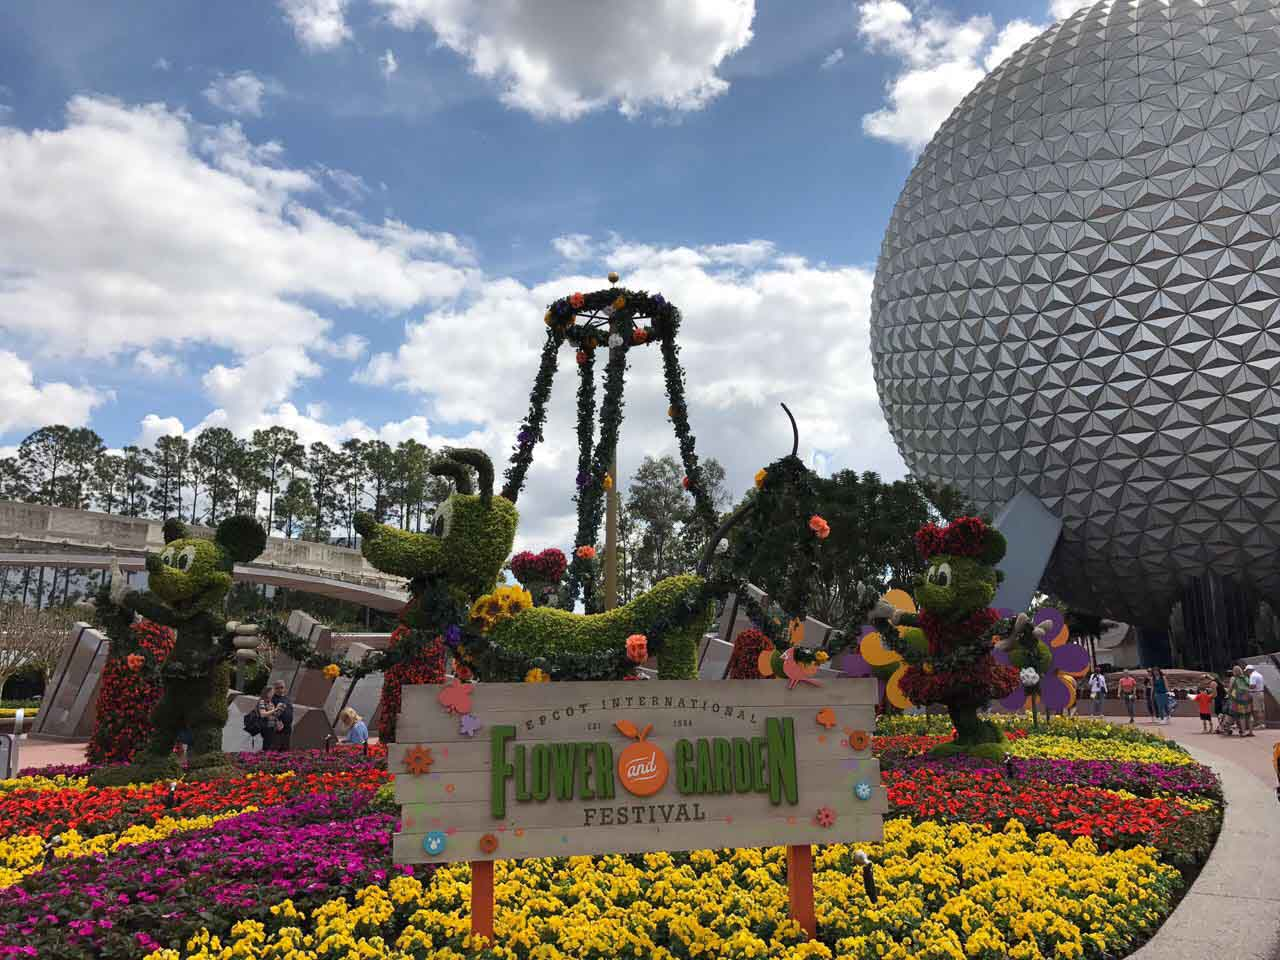 Epcot Flower and Garden